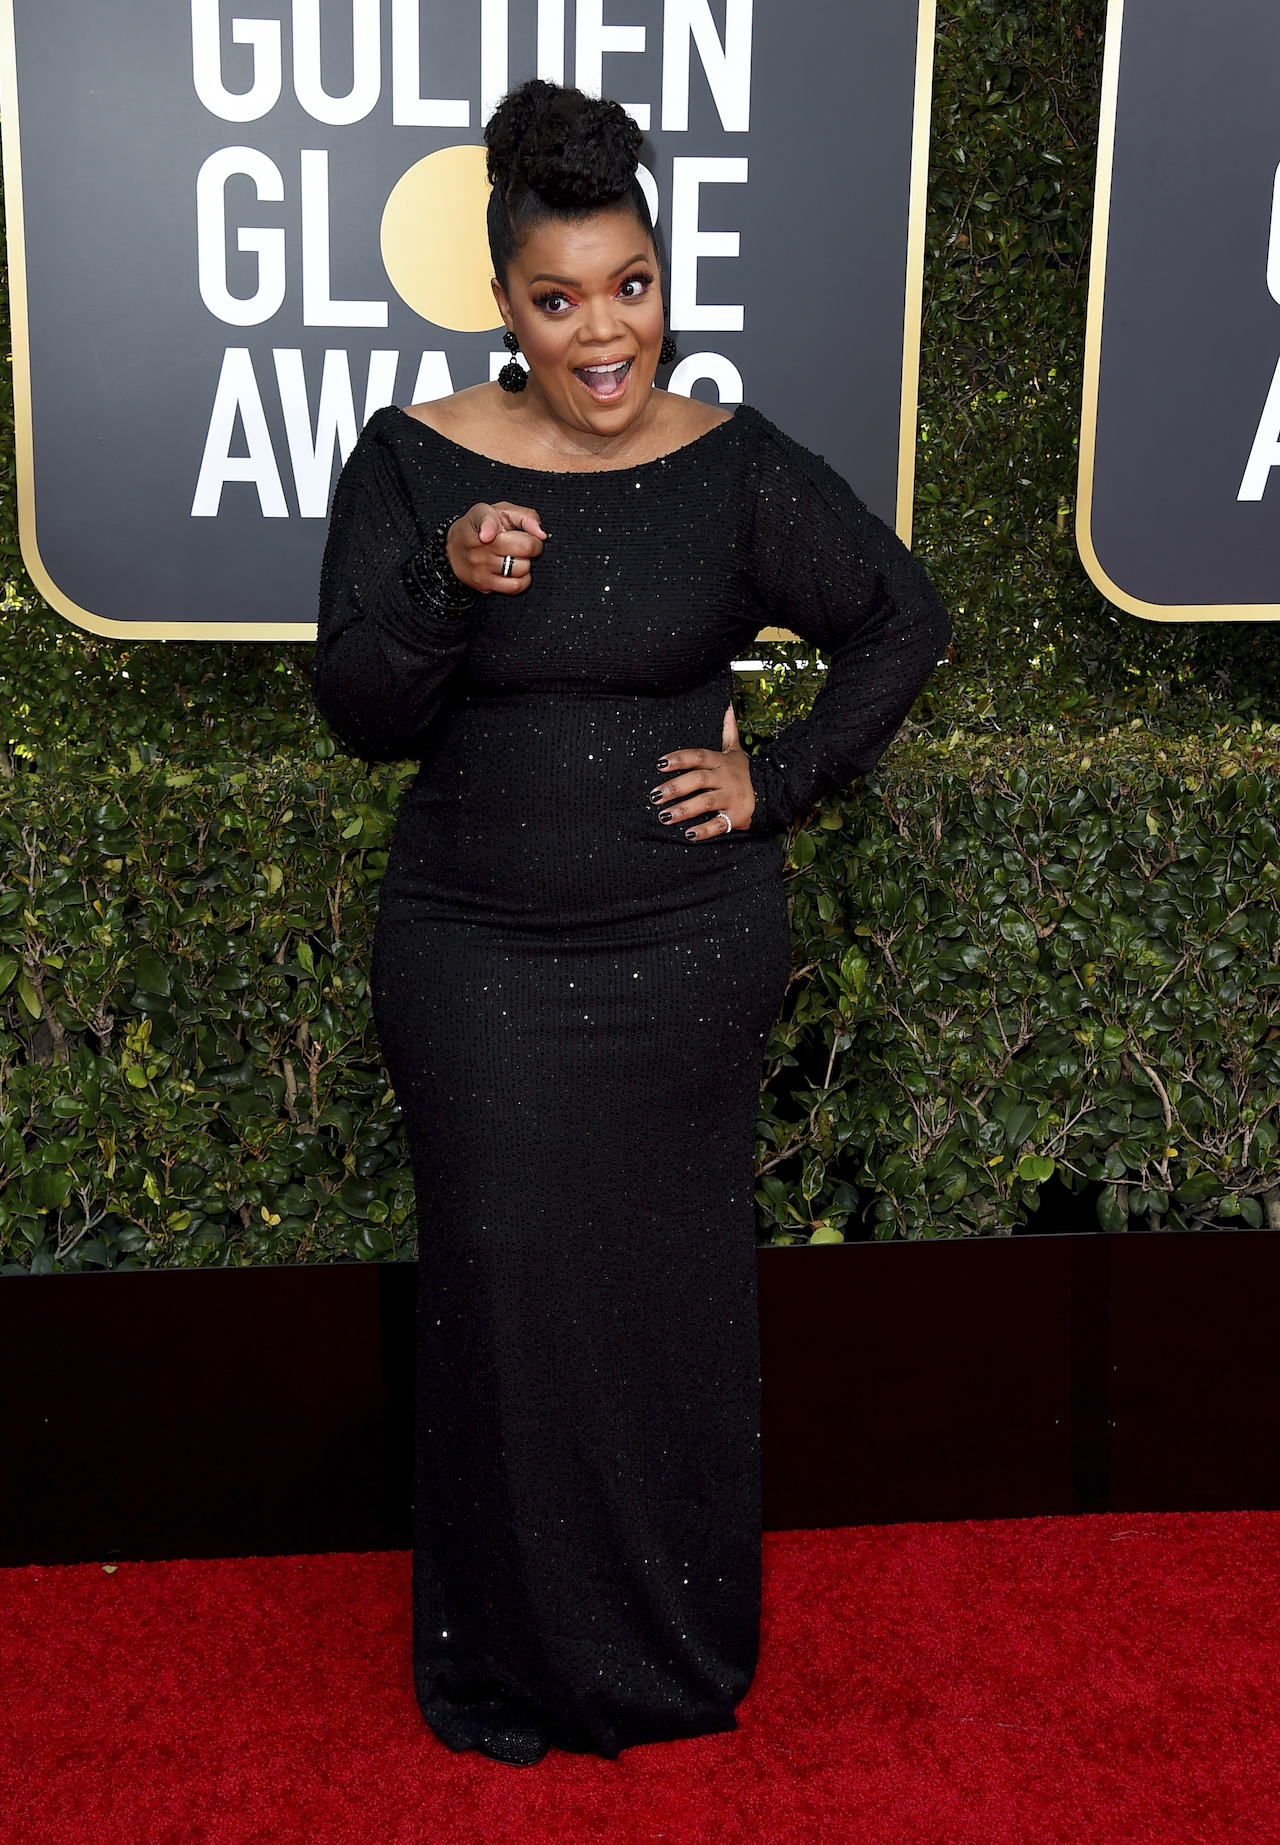 "<div class=""meta image-caption""><div class=""origin-logo origin-image ap""><span>AP</span></div><span class=""caption-text"">Yvette Nicole Brown arrives at the 76th annual Golden Globe Awards at the Beverly Hilton Hotel on Sunday, Jan. 6, 2019, in Beverly Hills, Calif. (Jordan Strauss/Invision/AP)</span></div>"